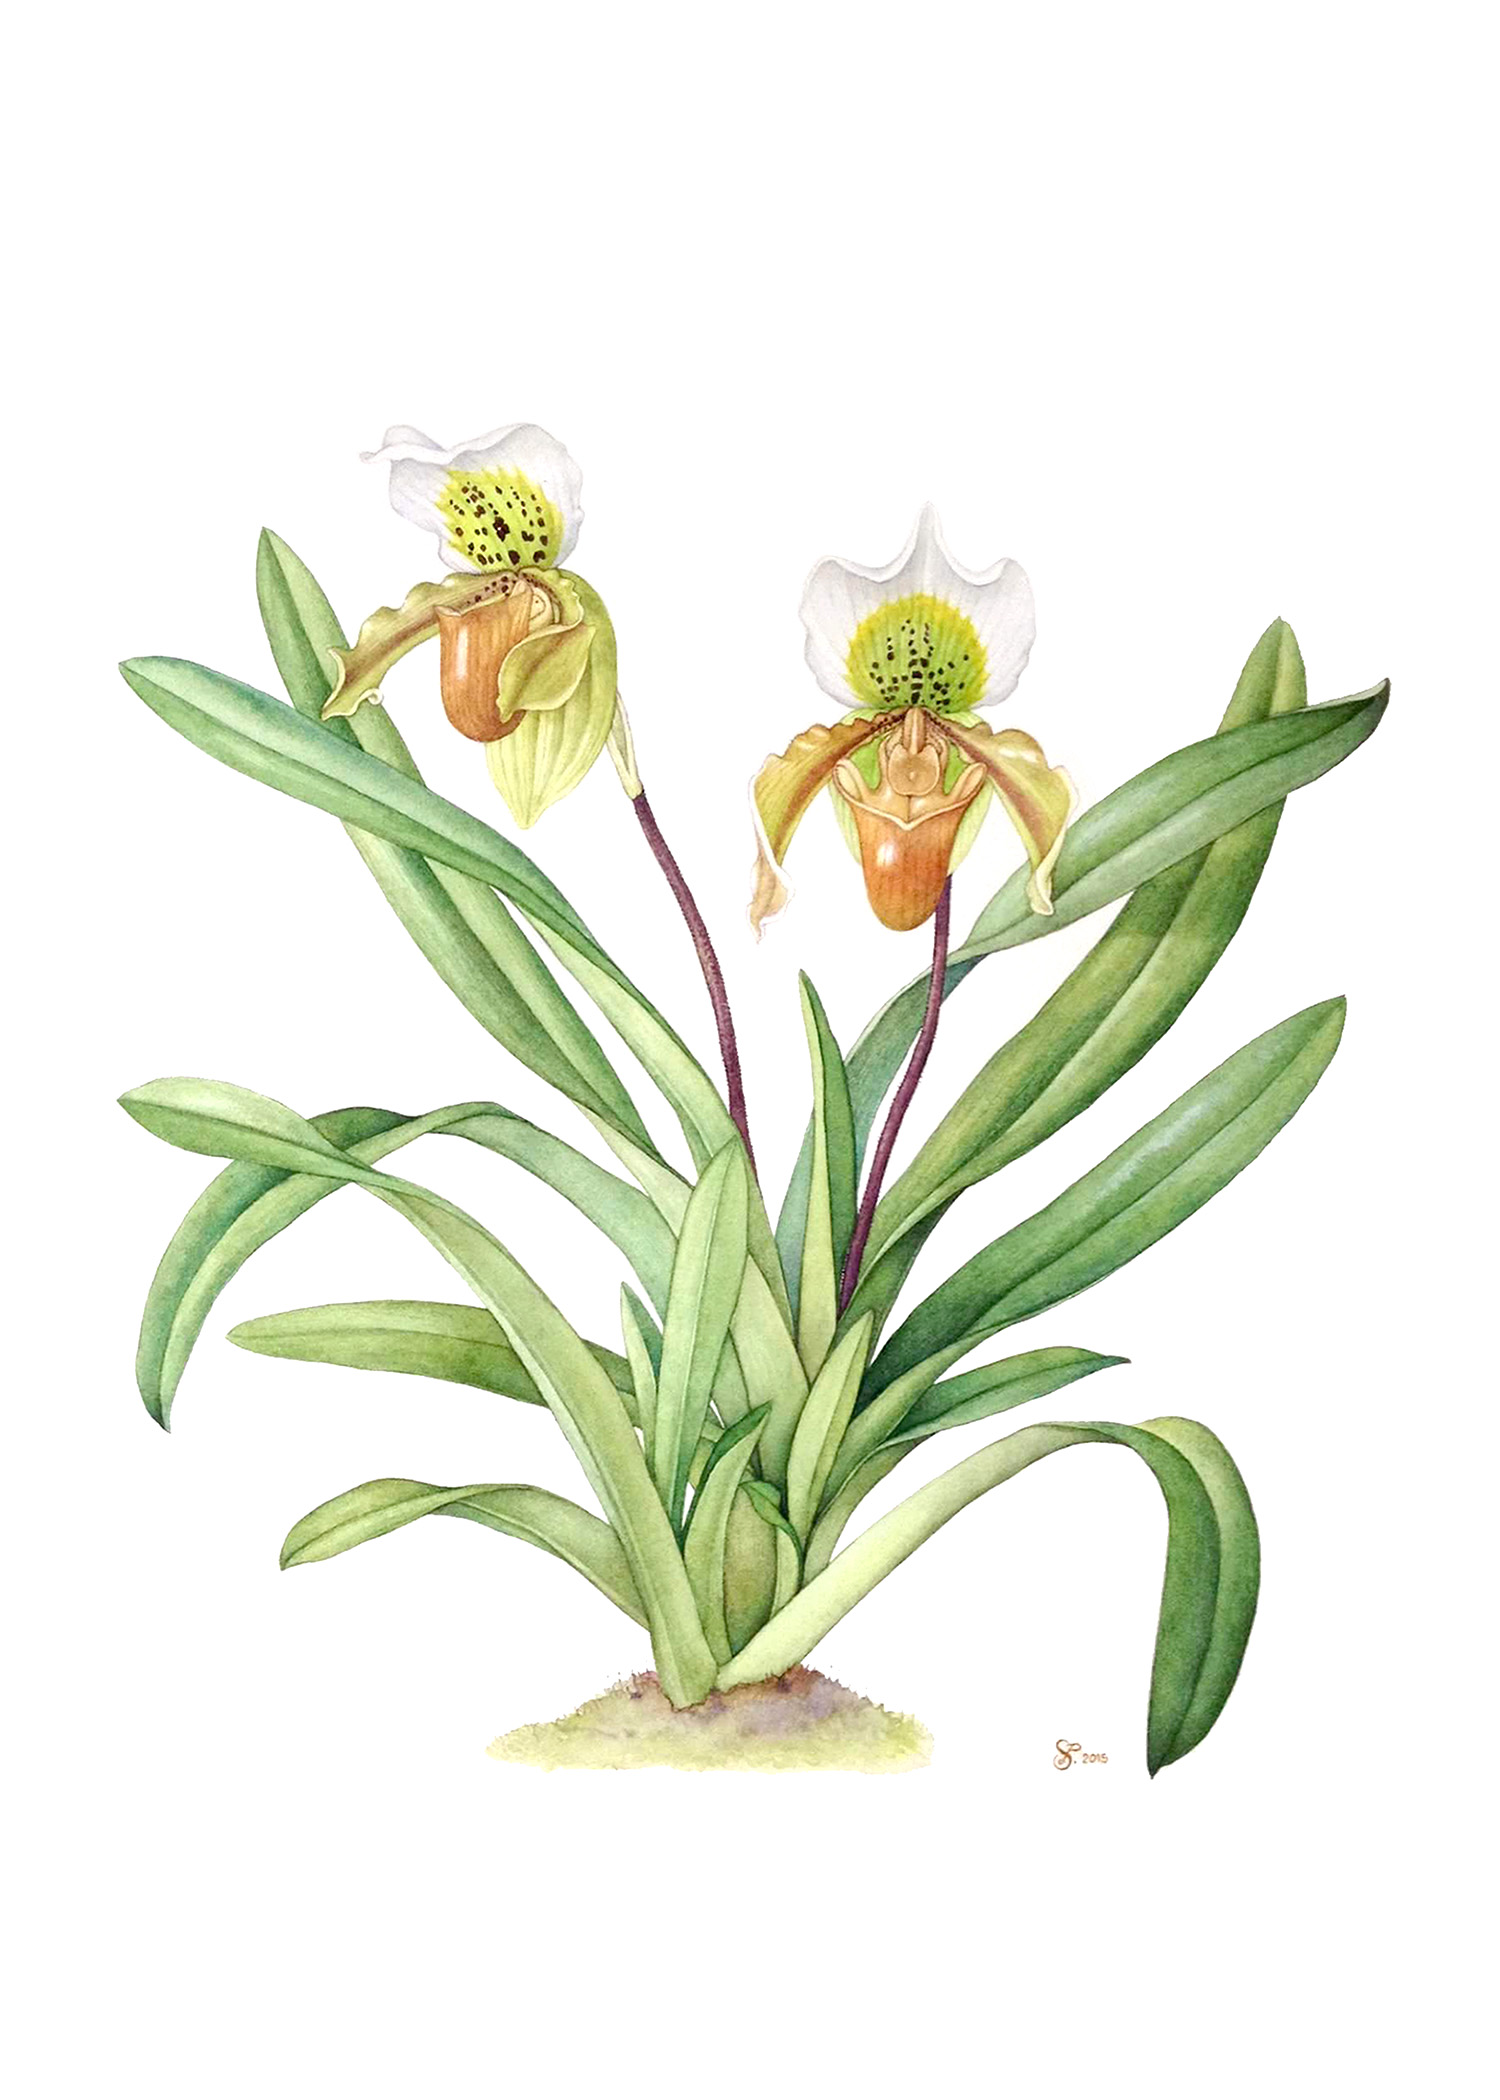 Paphiopedilum exul,  watercolor on paper,   Sunitsorn Pimpasalee ©Department of Plant Science, Mahidol Universit y